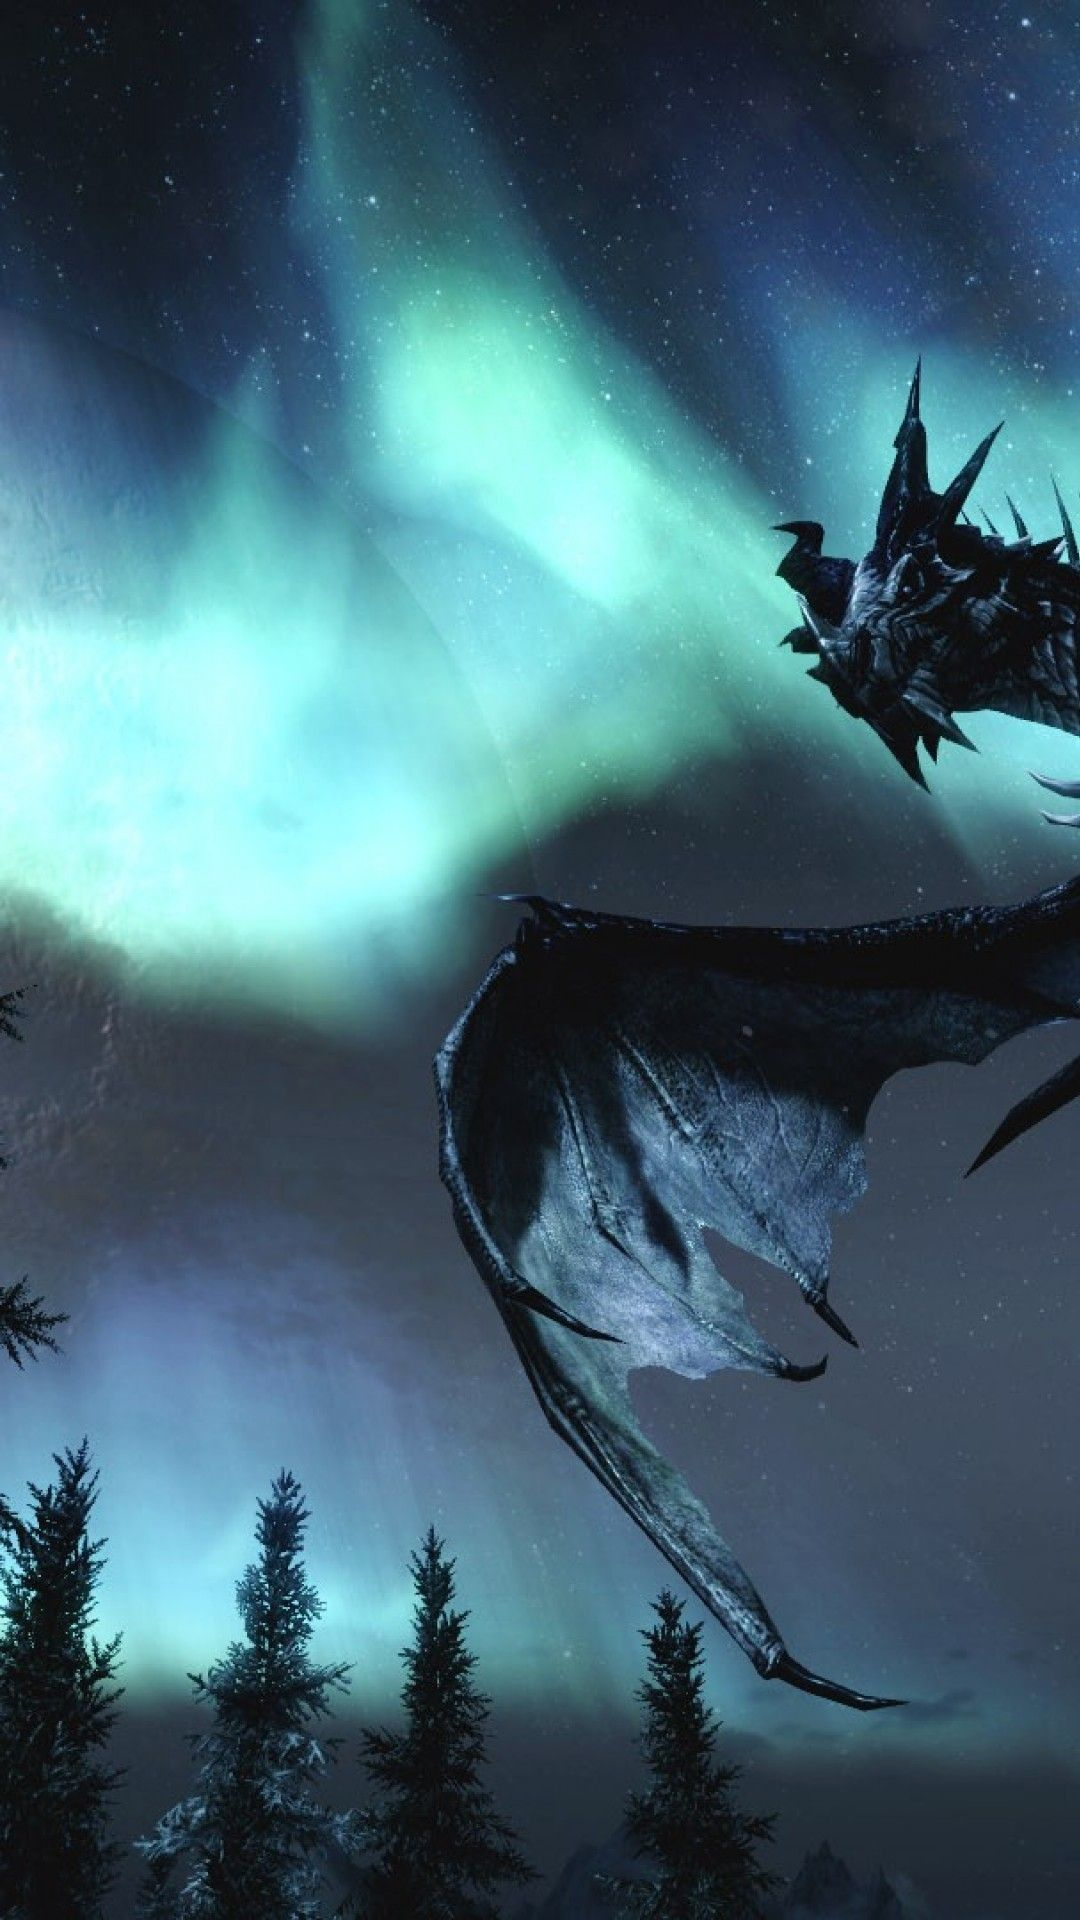 Skyrim Wallpaper Ios in 2020 (With images) Skyrim